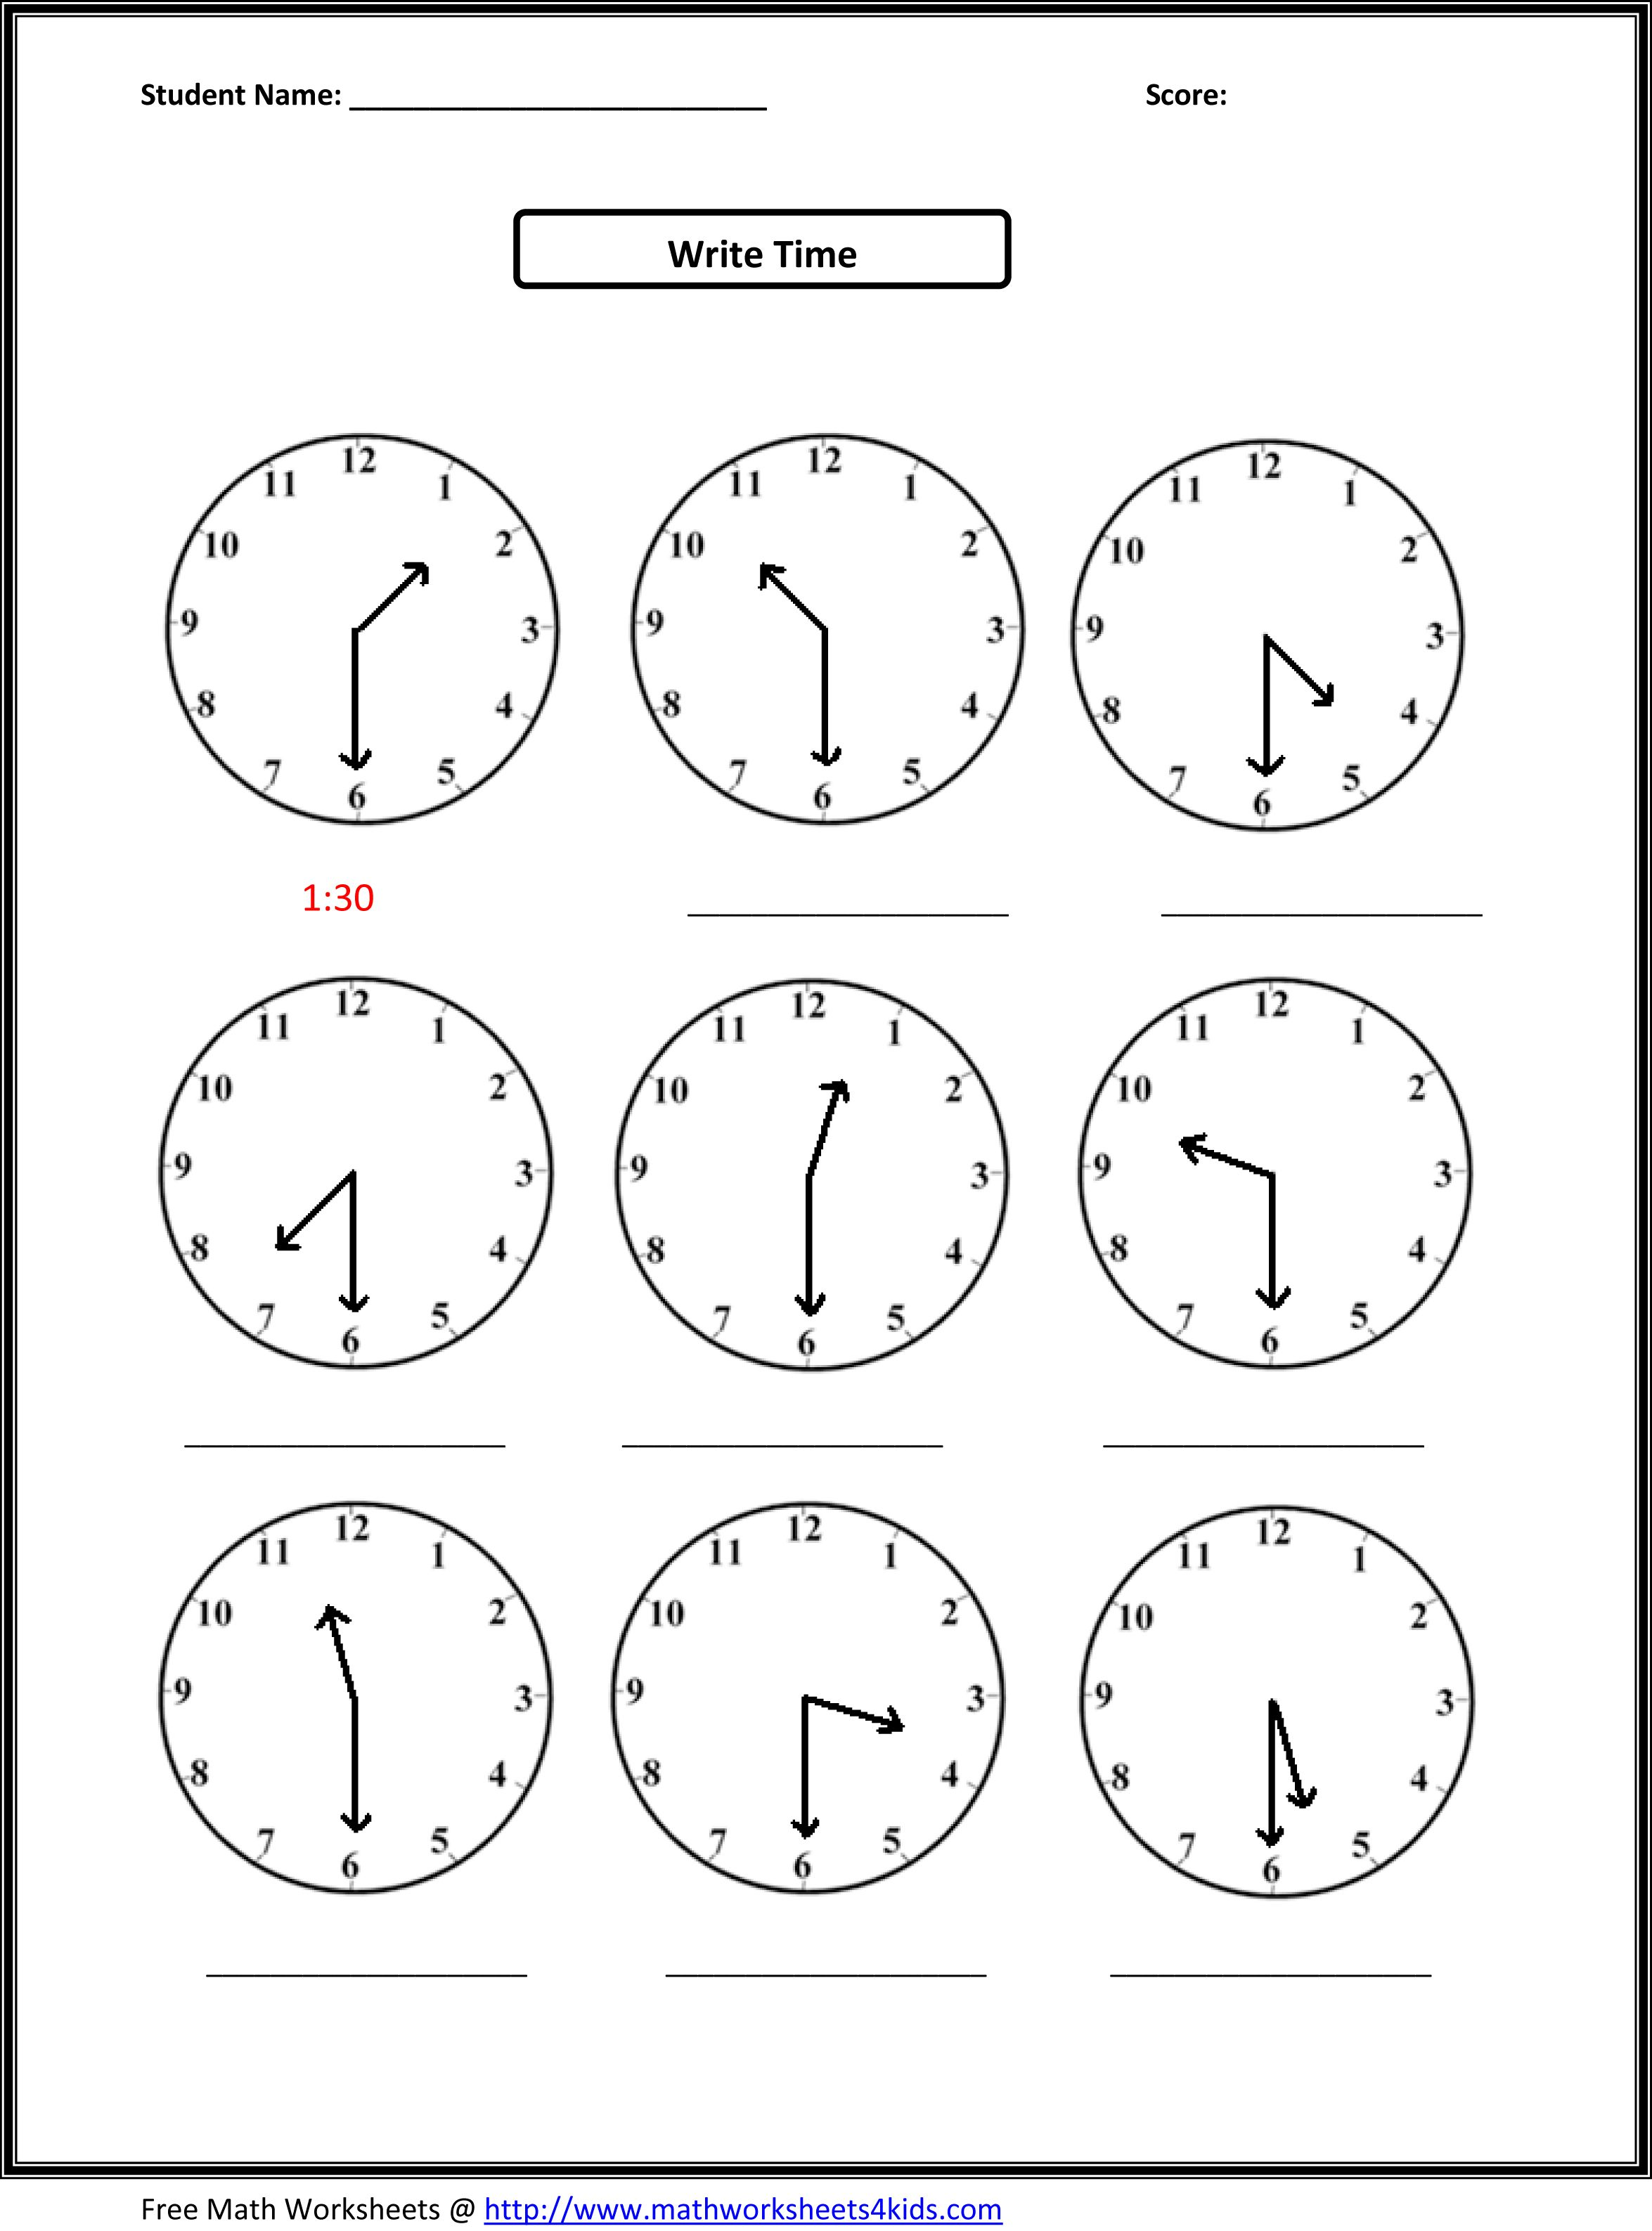 Proatmealus  Pleasant Worksheet On Time For Grade   Reocurent With Inspiring Free Printable Telling Time Worksheets Nd Grade  Reocurent With Alluring Division Fractions Worksheets Also Customary Capacity Worksheets In Addition Power To A Power Worksheet And Climate Vs Weather Worksheet As Well As The Day After Tomorrow Worksheet Additionally Balancing Chemical Equations Worksheet Pdf From Reocurentcom With Proatmealus  Inspiring Worksheet On Time For Grade   Reocurent With Alluring Free Printable Telling Time Worksheets Nd Grade  Reocurent And Pleasant Division Fractions Worksheets Also Customary Capacity Worksheets In Addition Power To A Power Worksheet From Reocurentcom